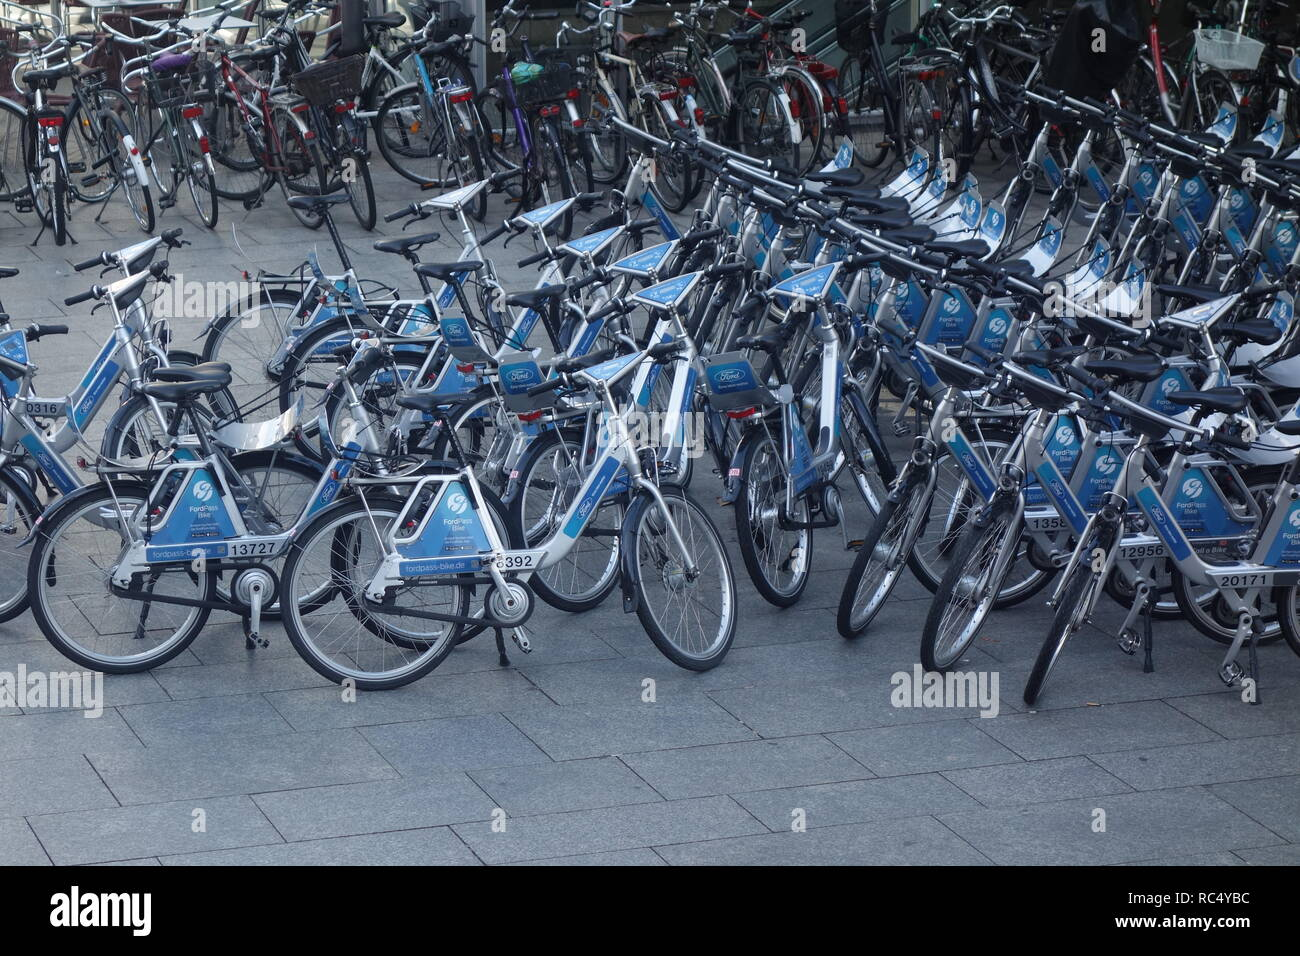 Bicycles for hire outside the main train station in Cologne, one of several bike hire schemes available in the city. Stock Photo